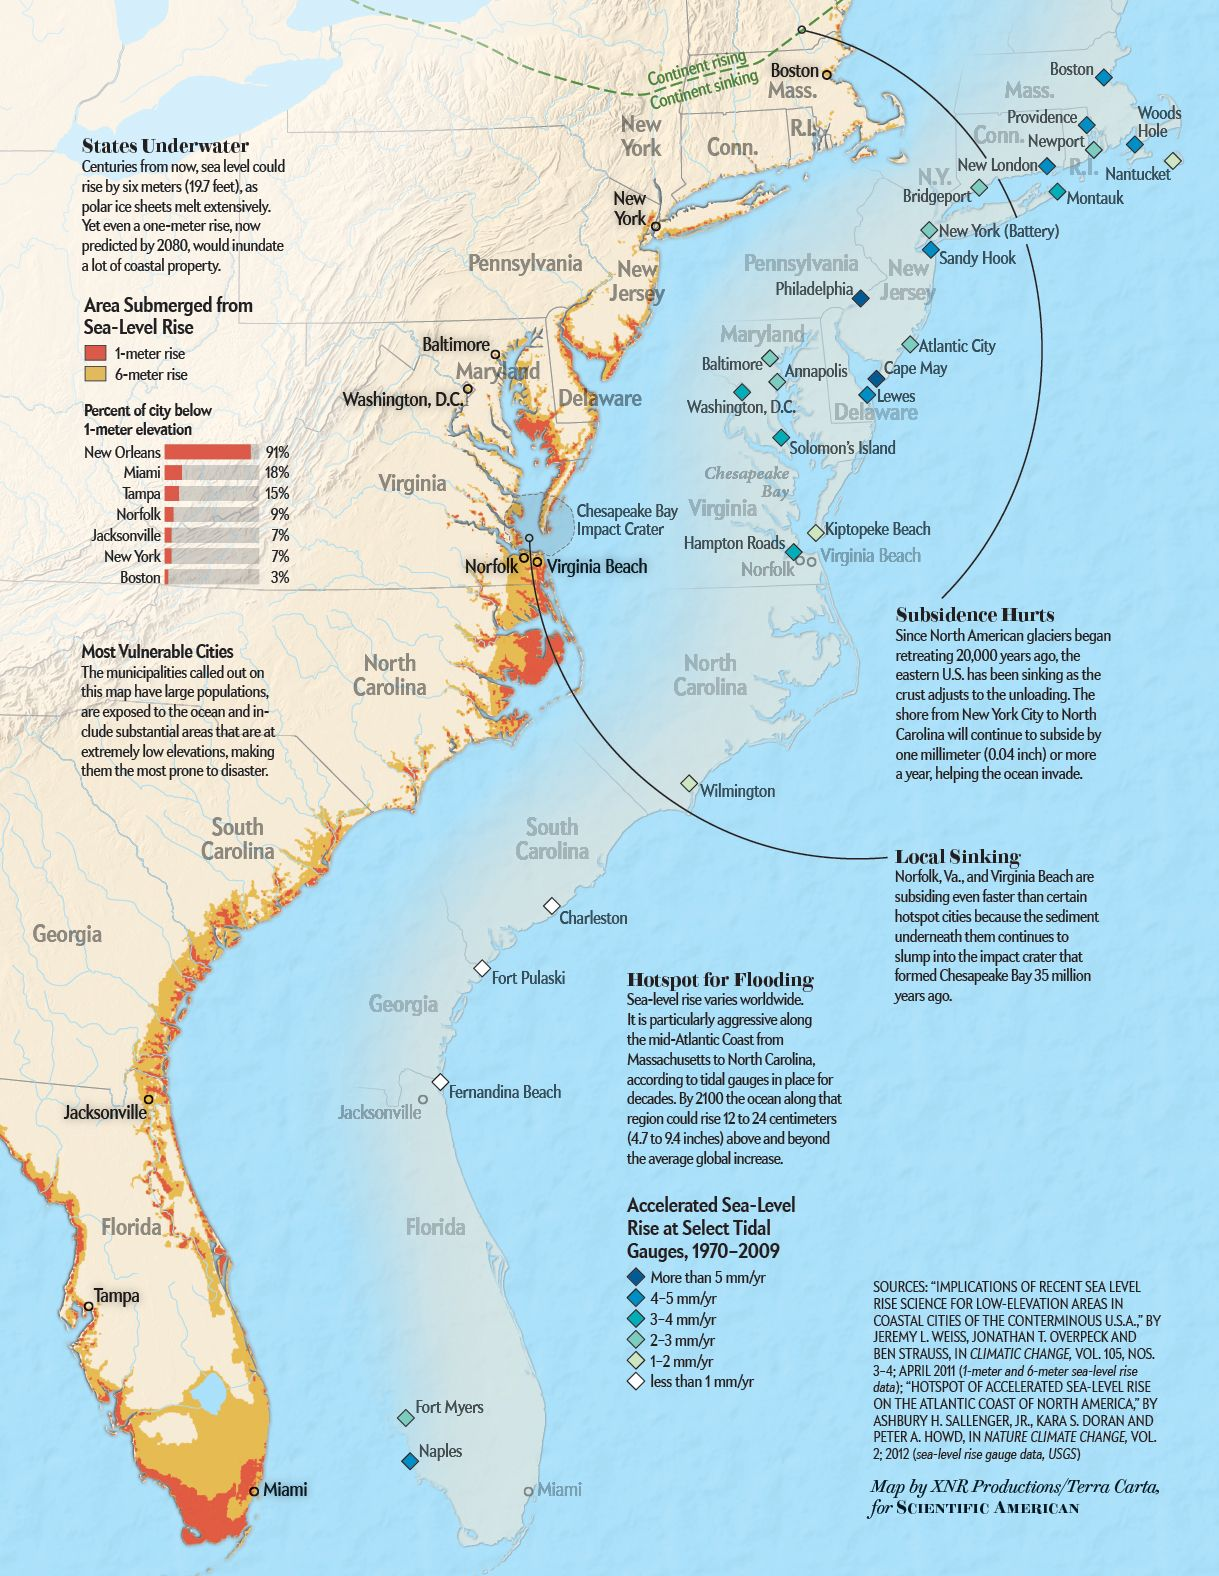 East Coast Is Extremely Vulnerable to Hurricane Flooding ...